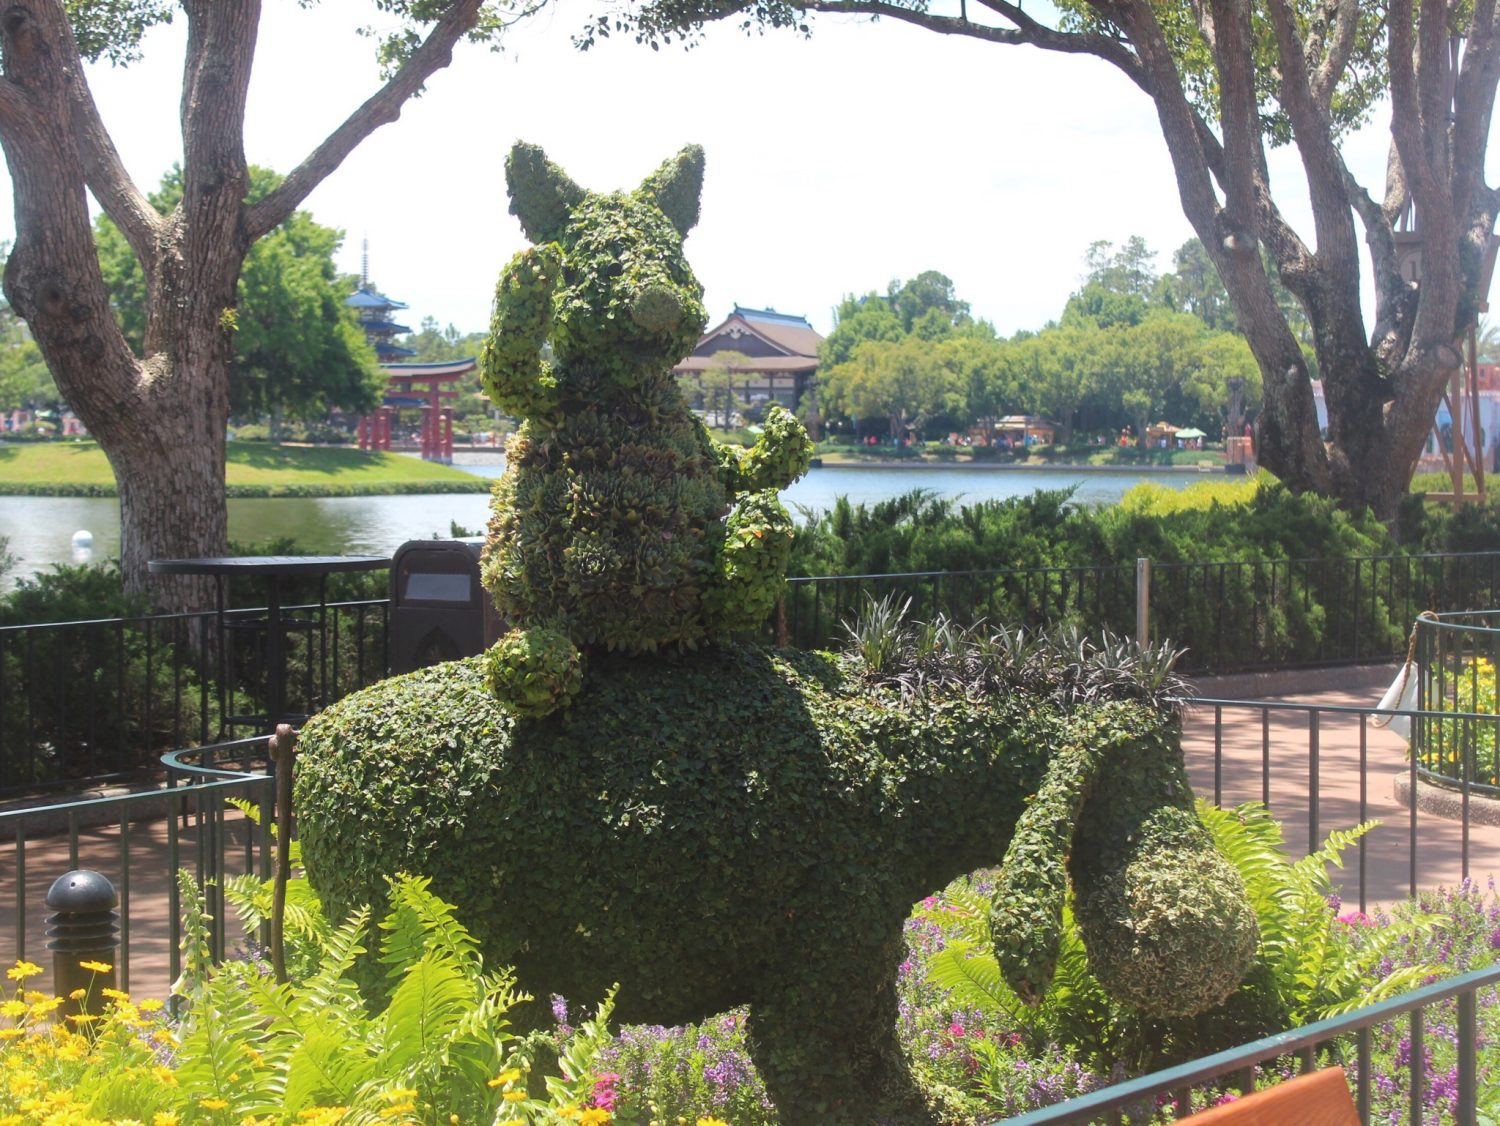 Epcot International Flower and Garden Festival Piglet